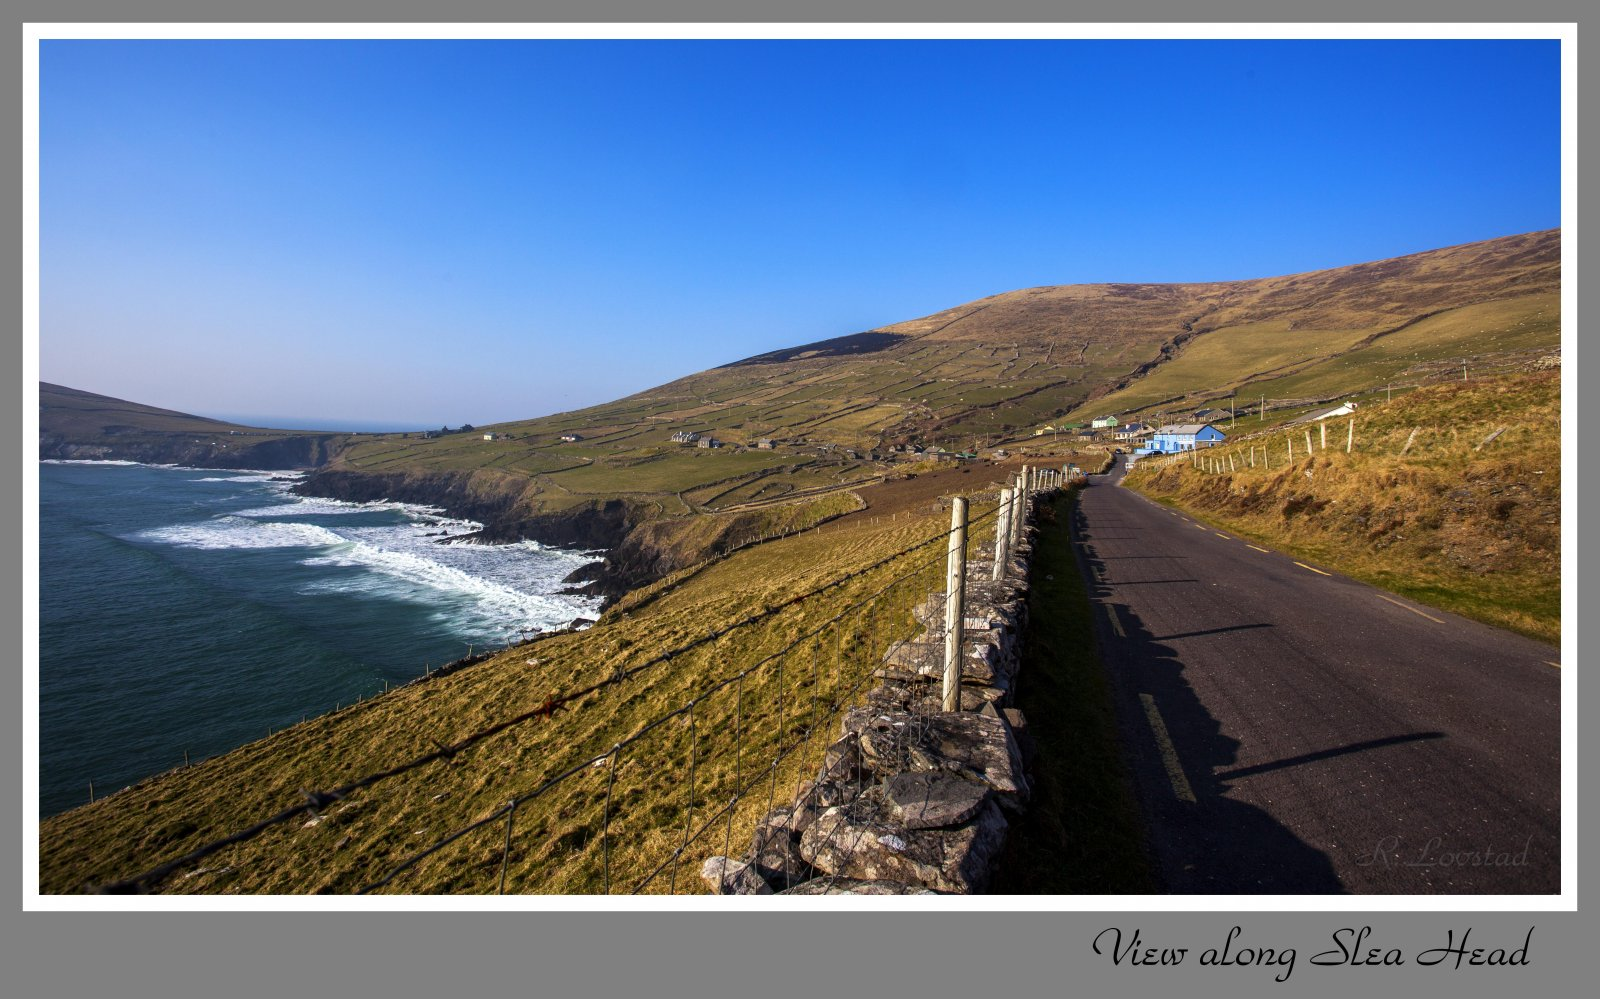 Click image for larger version  Name:Slea Head 1.jpg Views:46 Size:296.8 KB ID:121993